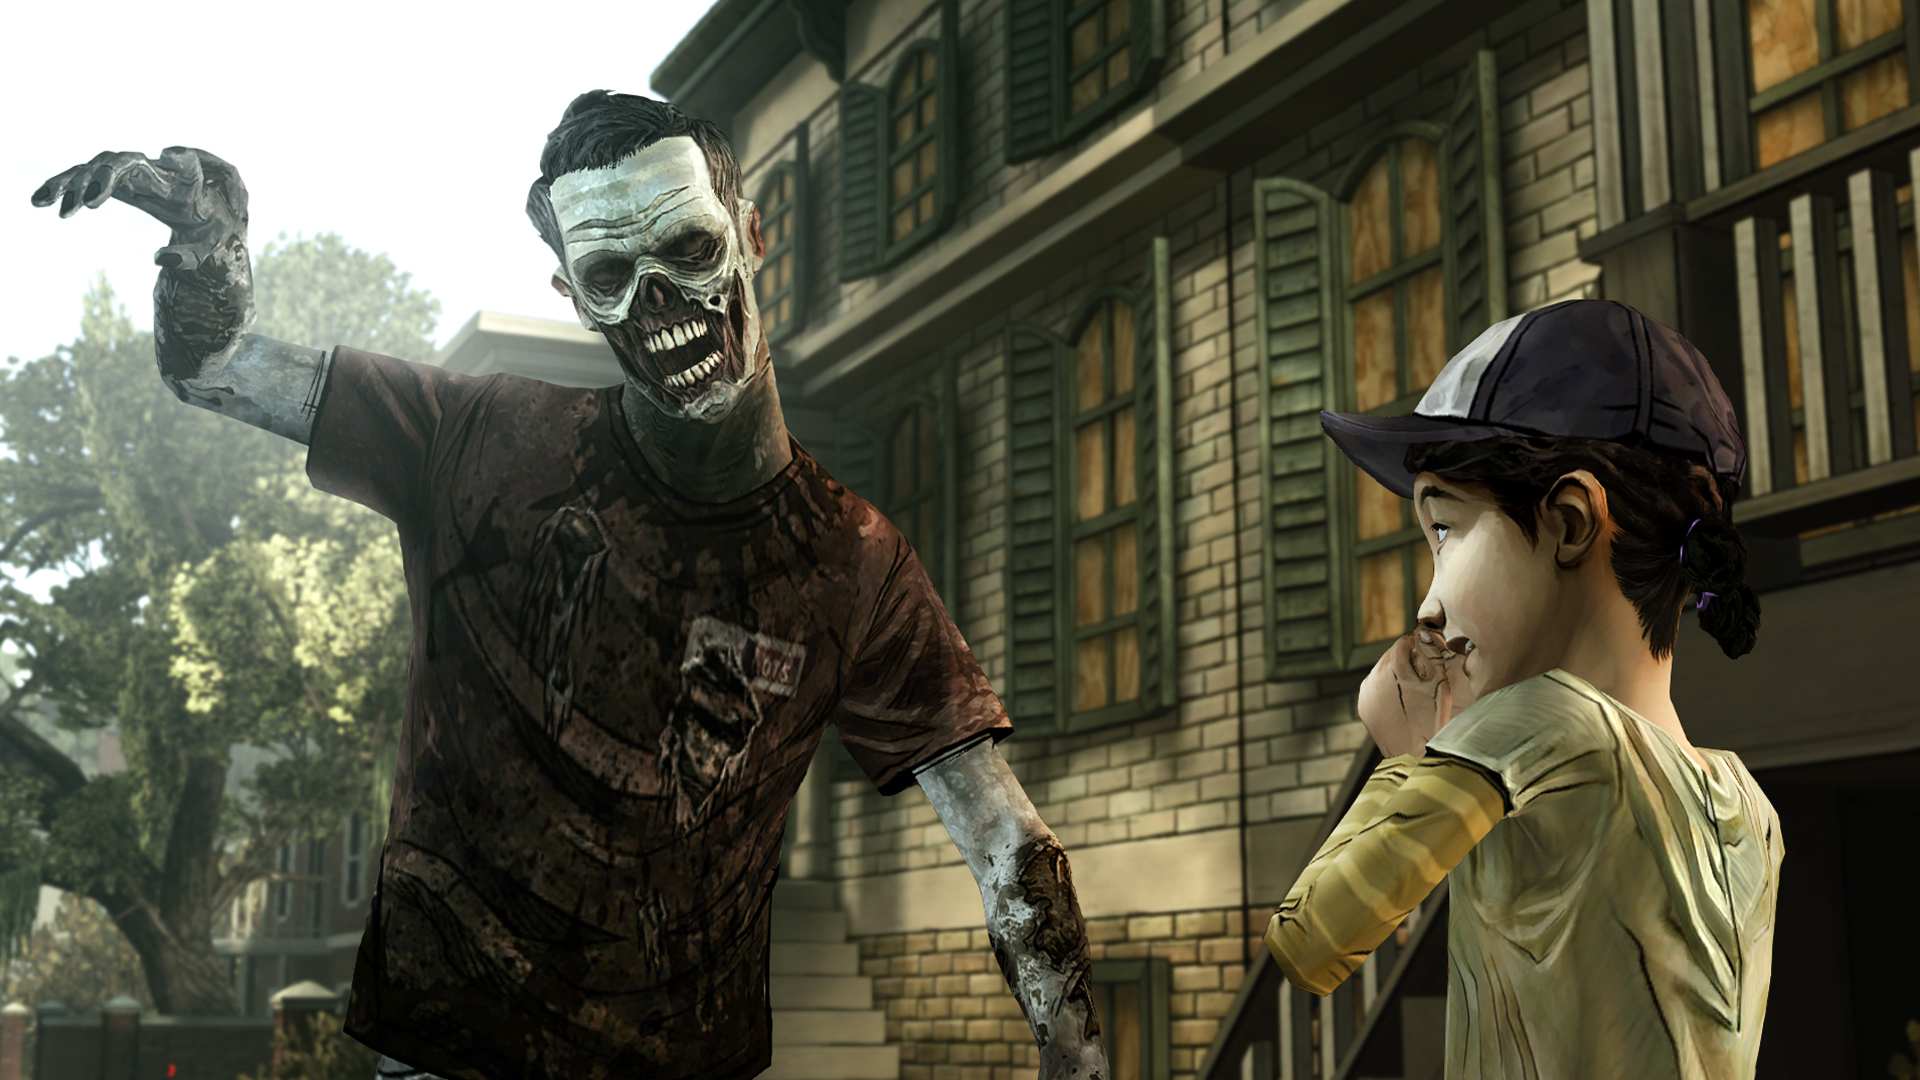 The Walking Dead: Episode Four due out tomorrow